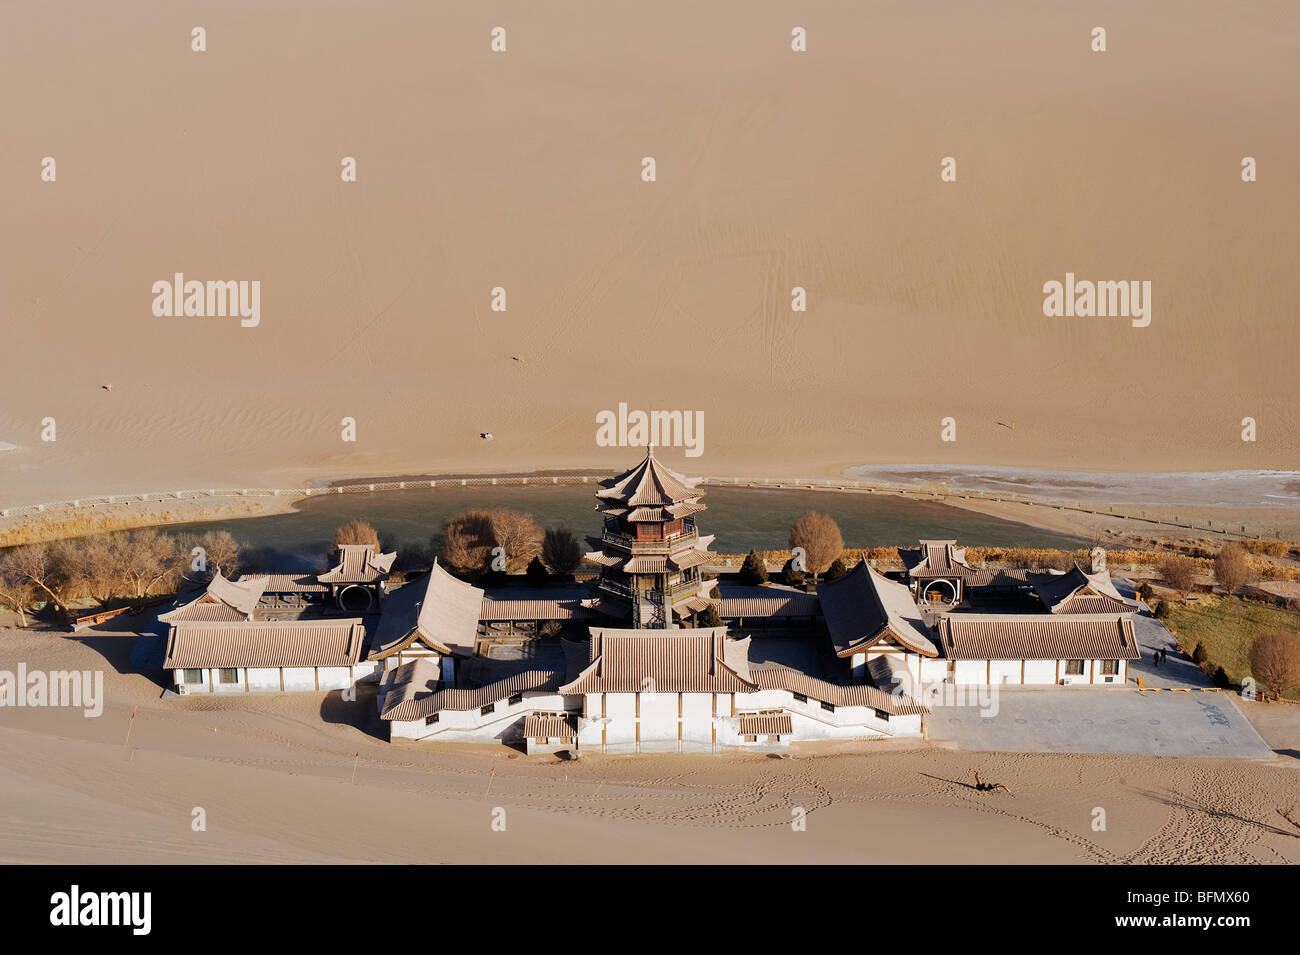 China, Gansu Province, Dunghuang, Ming Sha sand dunes and pavilion at Crescent Moon Lake - Stock Image